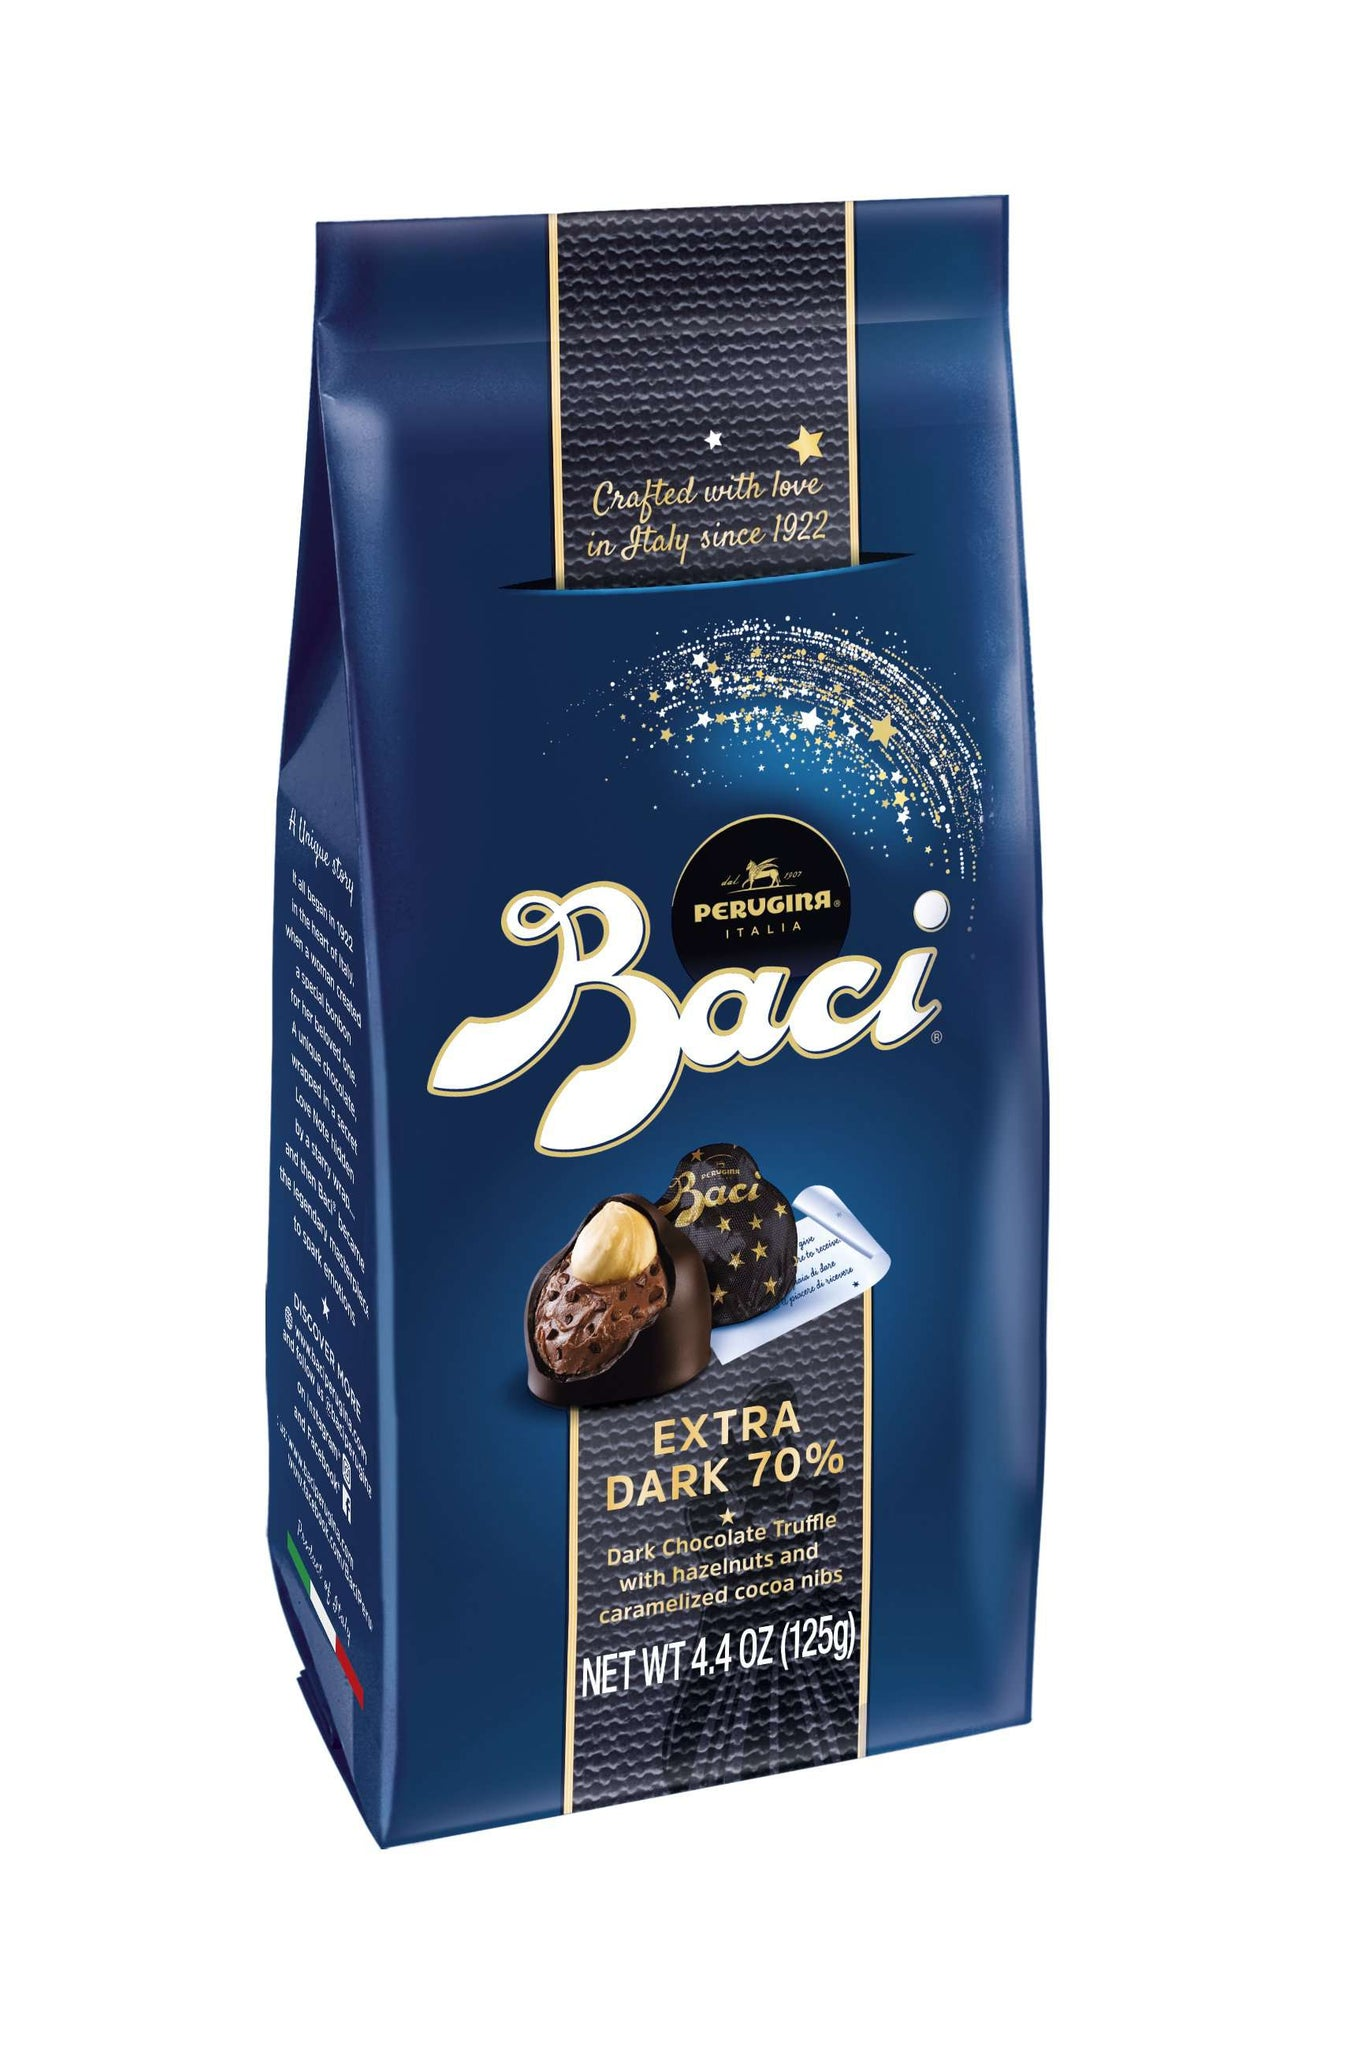 Baci Perugina Extra Dark 70% Chocolate Truffles Bag, 125 g